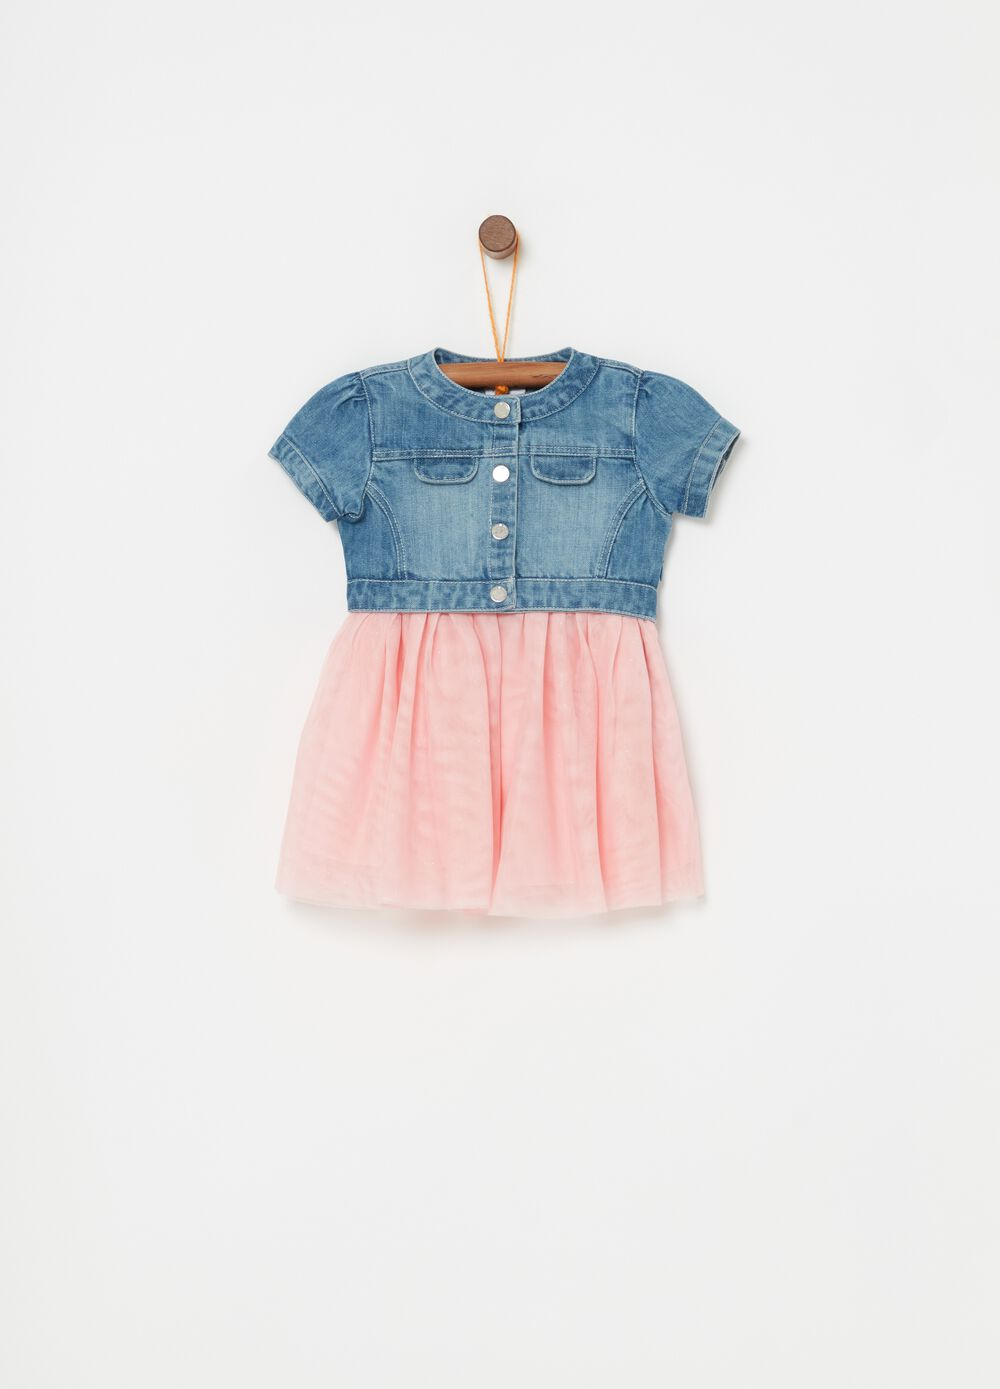 Dress in denim with short sleeves.